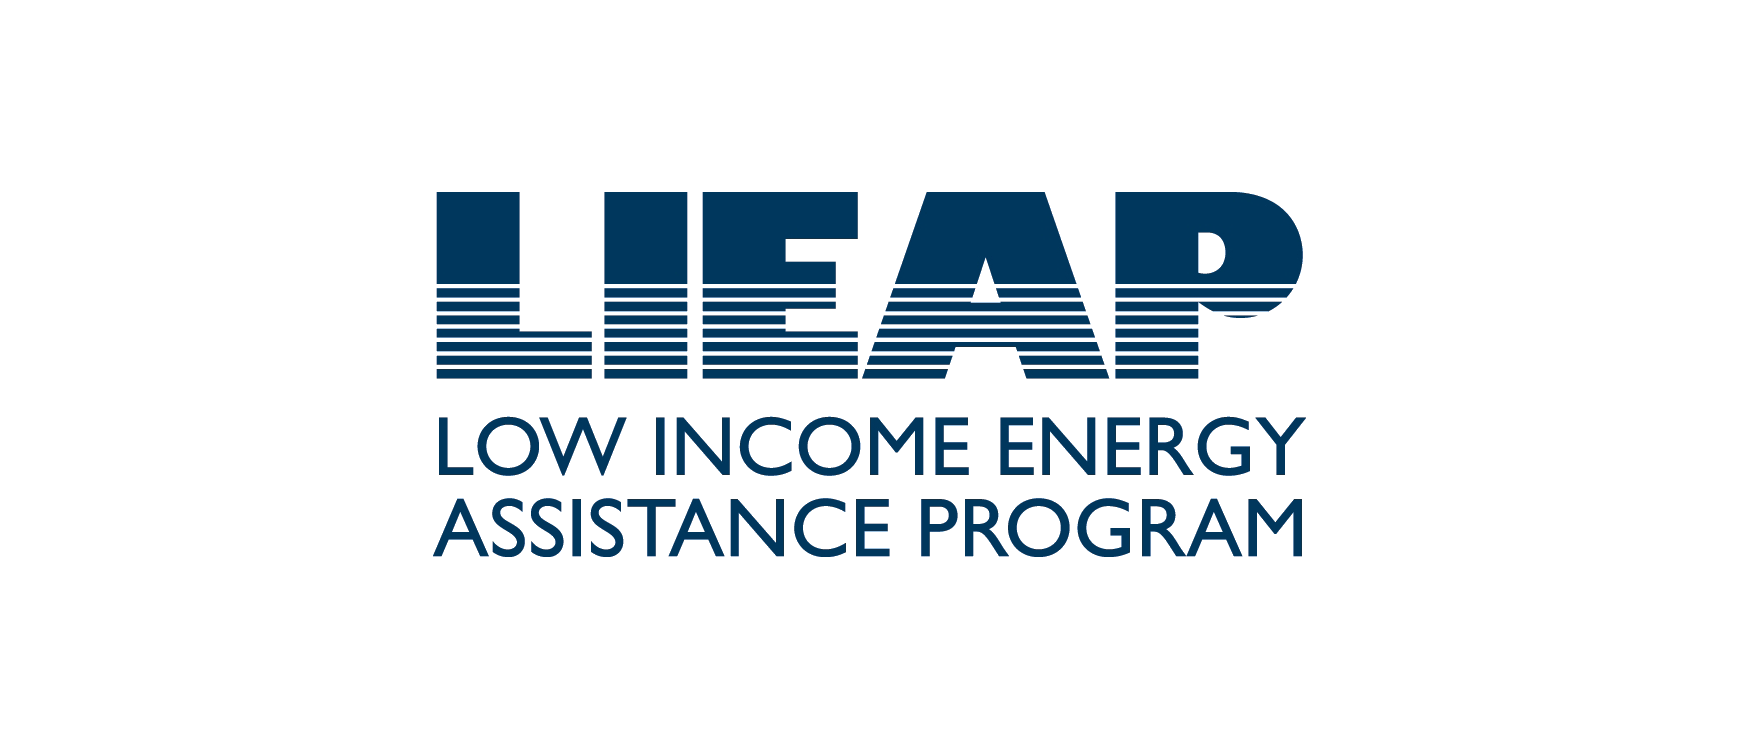 Higher demand for energy assistance covered by KXLH News